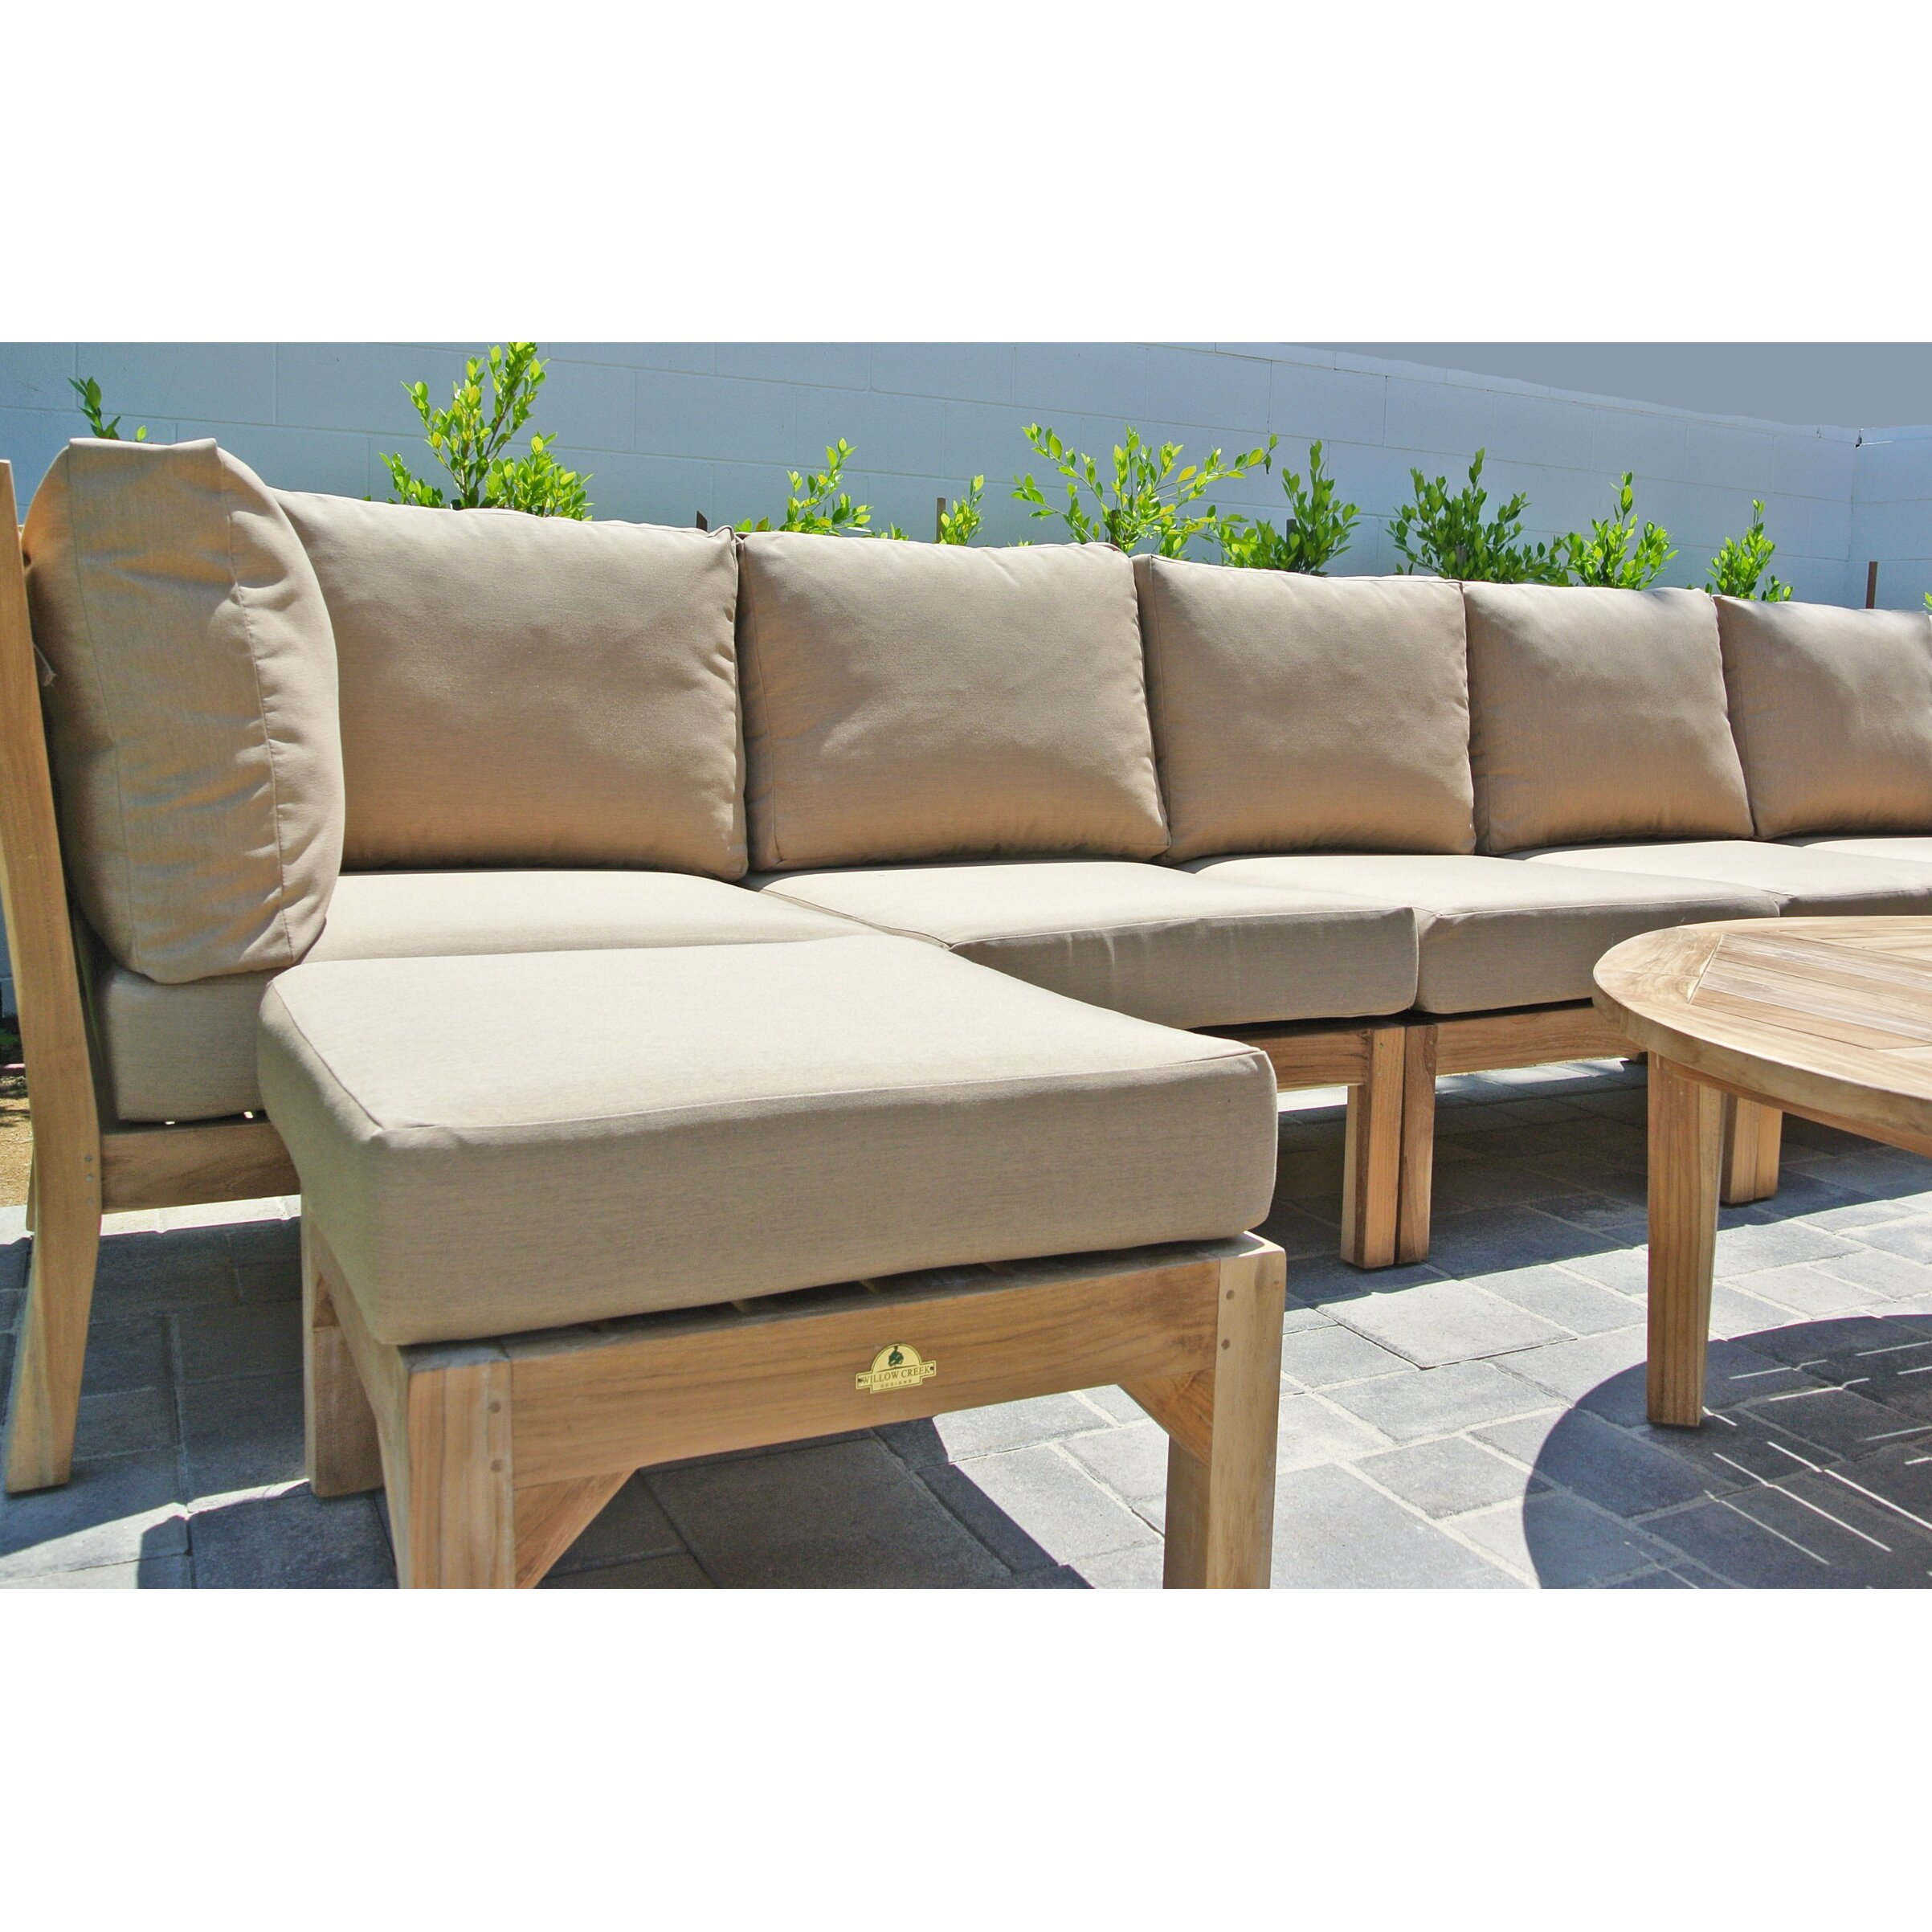 Willow creek designs huntington 3 piece deep seating group for Willow creek designs